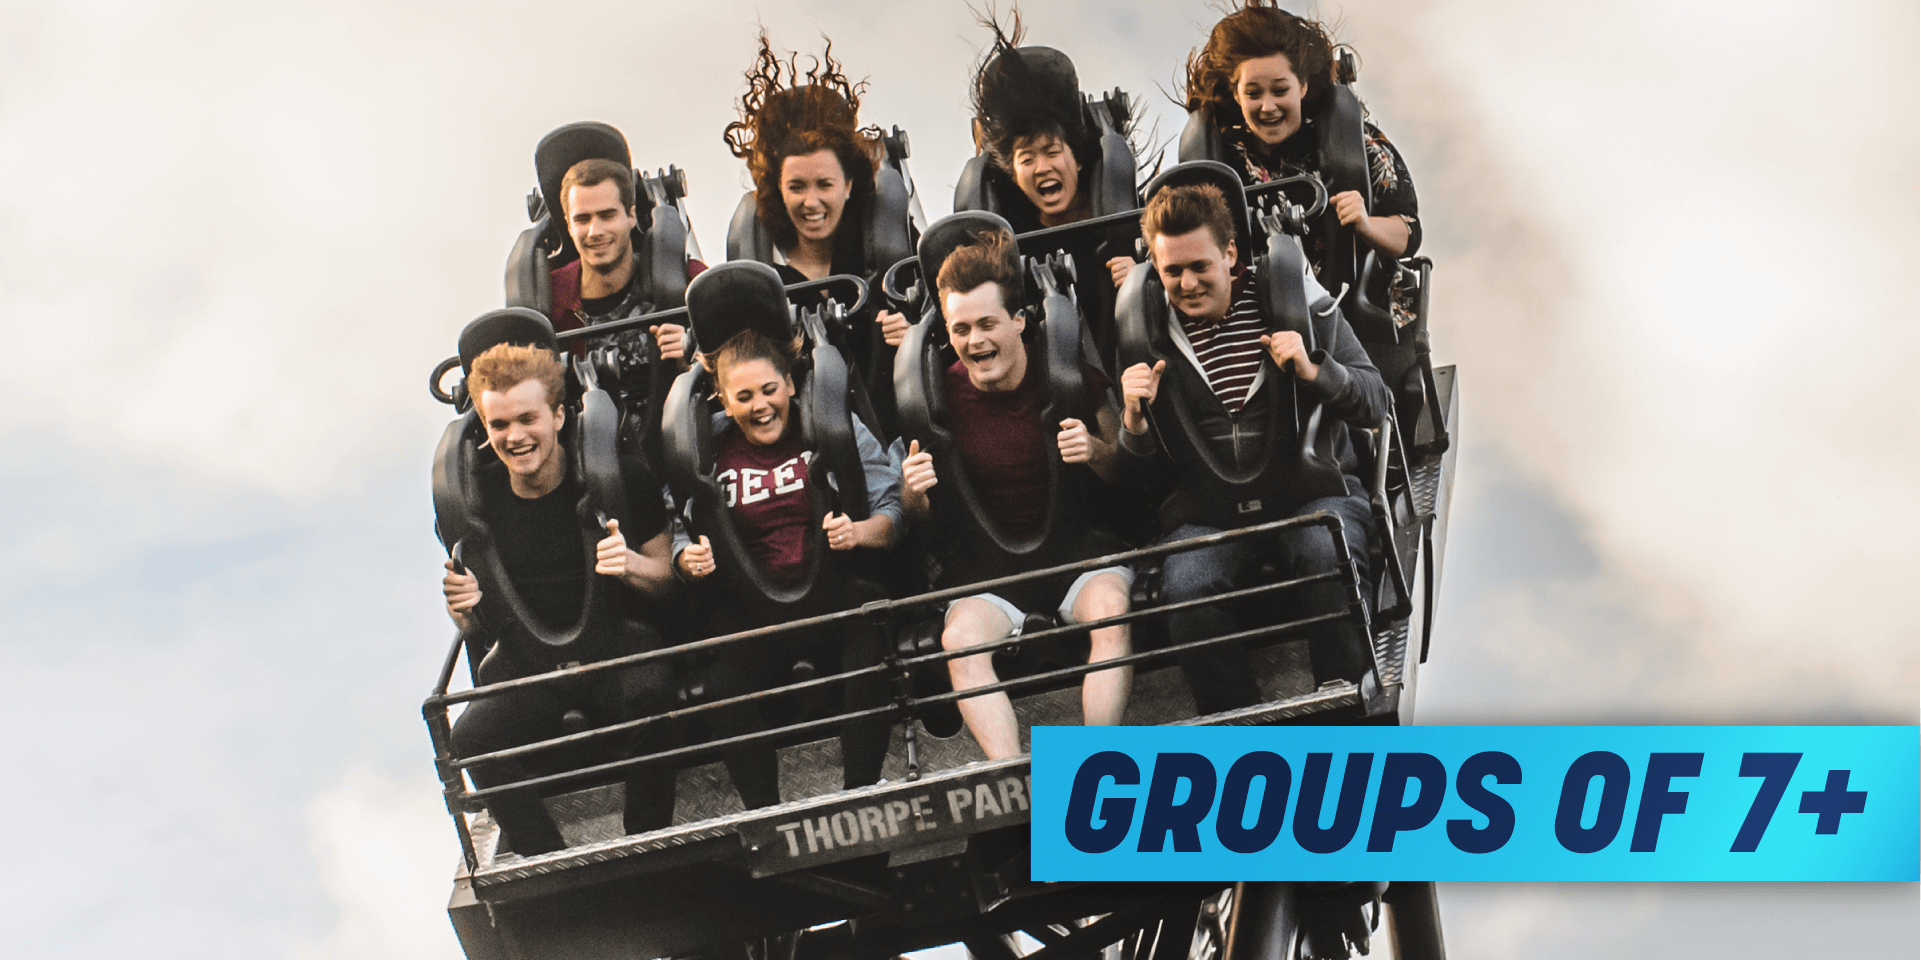 Theme Park Group Discount groups of 7+